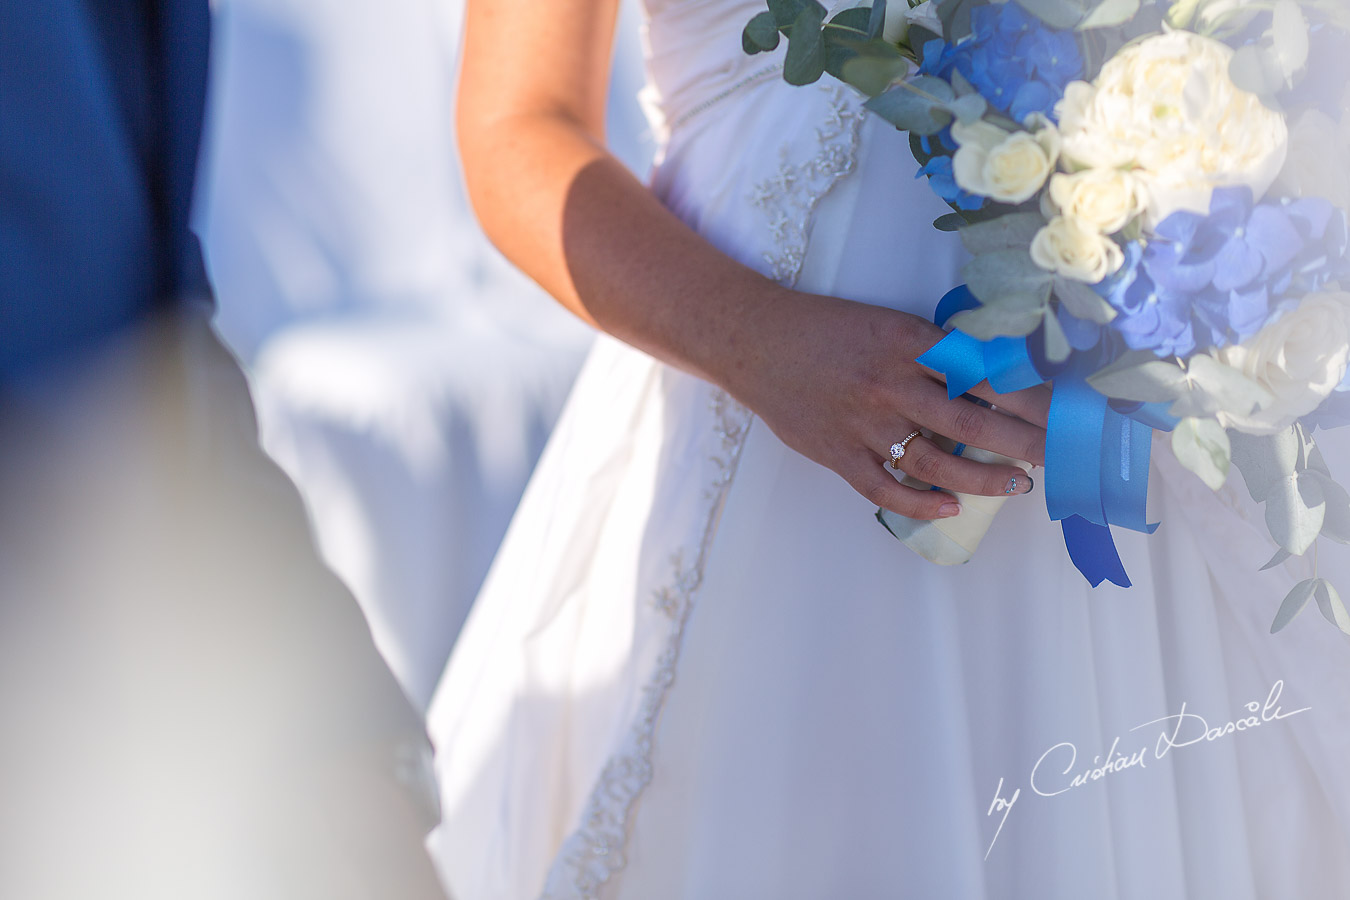 Engagement ring photographed during wedding ceremony at Elias Beach Hotel in Limassol